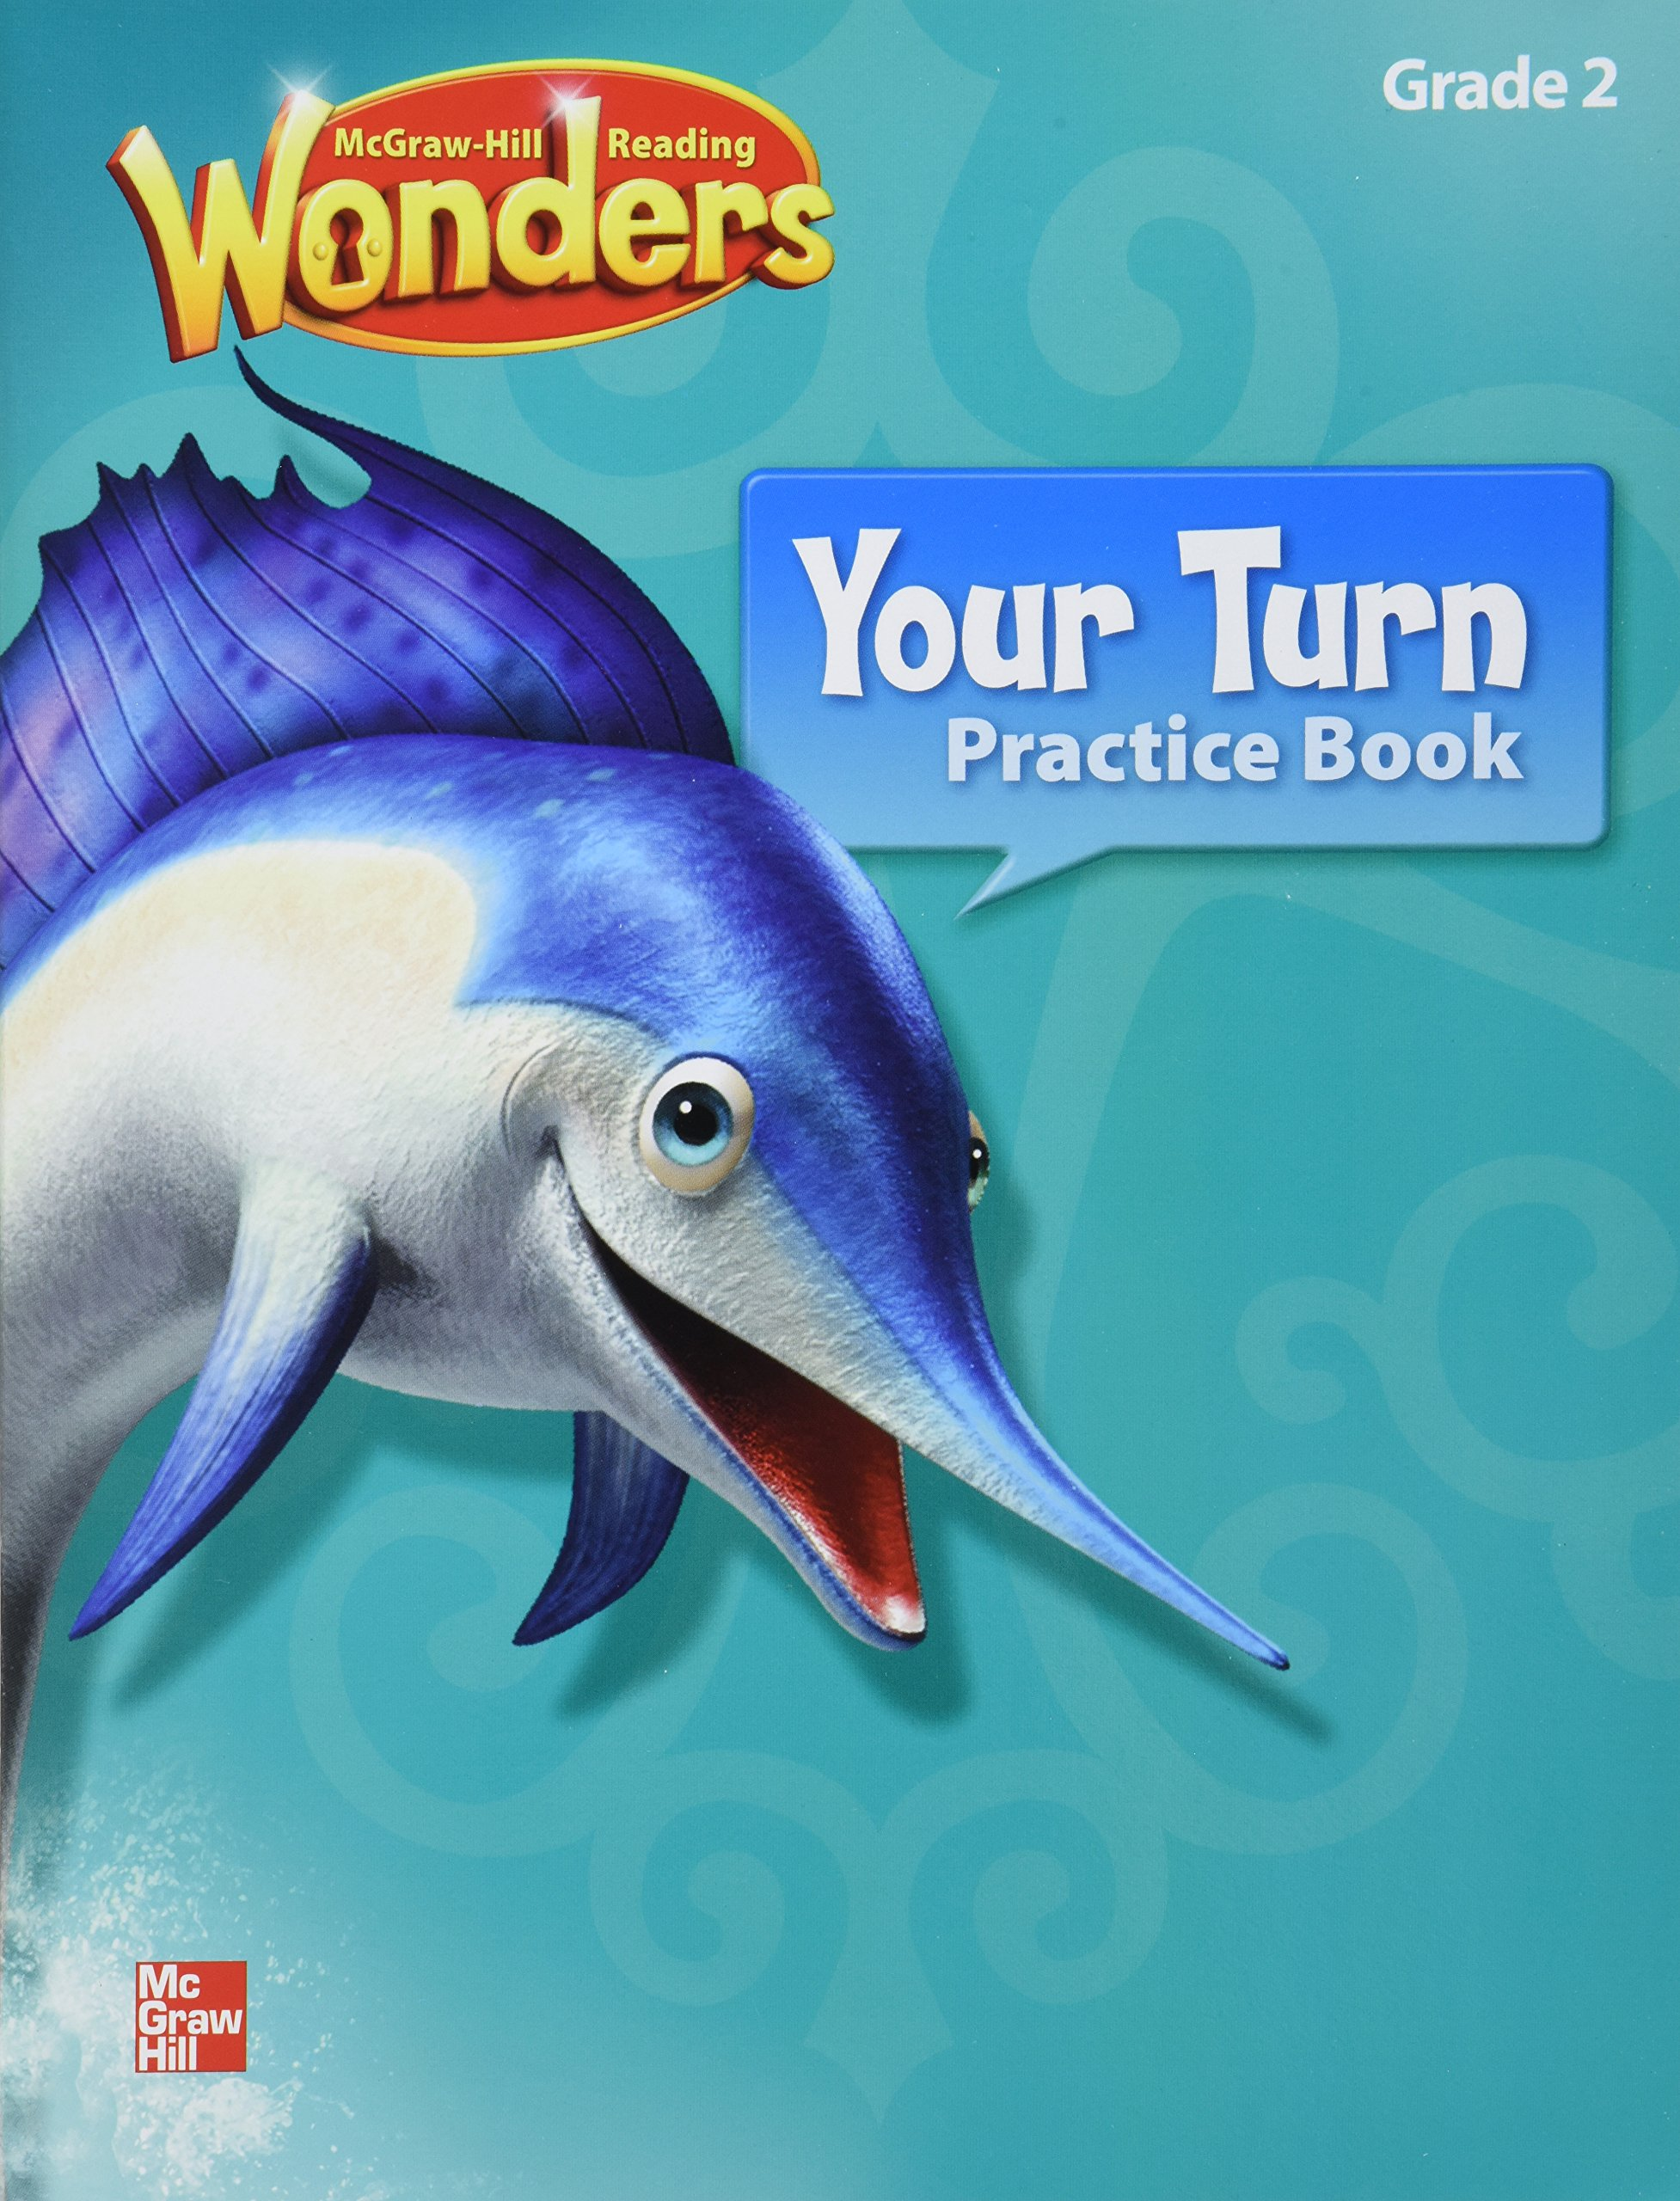 Worksheet Practice Book Grade 2 reading wonders your turn practice book grade 2 macmillanmcgraw hil 9780021188673 amazon com books